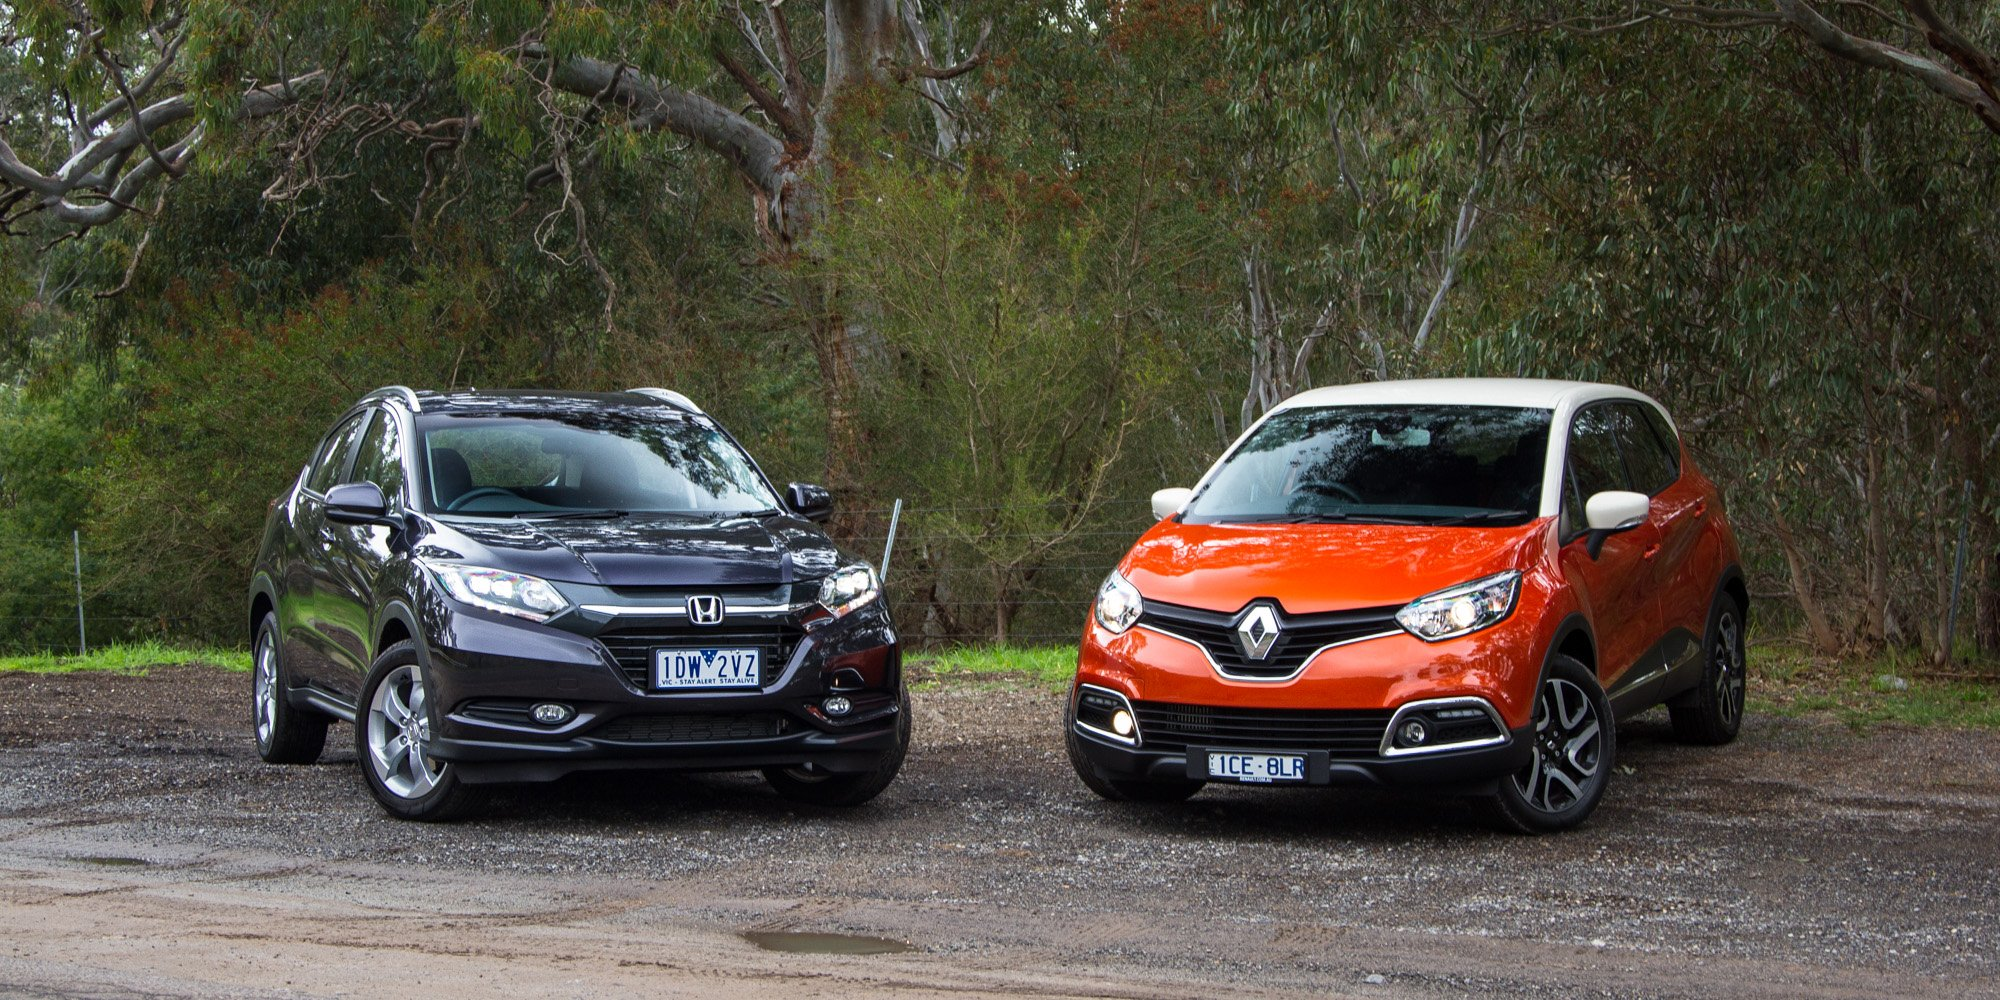 Cx 3 Vs Hrv >> Honda HR-V VTi-S v Renault Captur Dynamique : Comparison Review - Photos